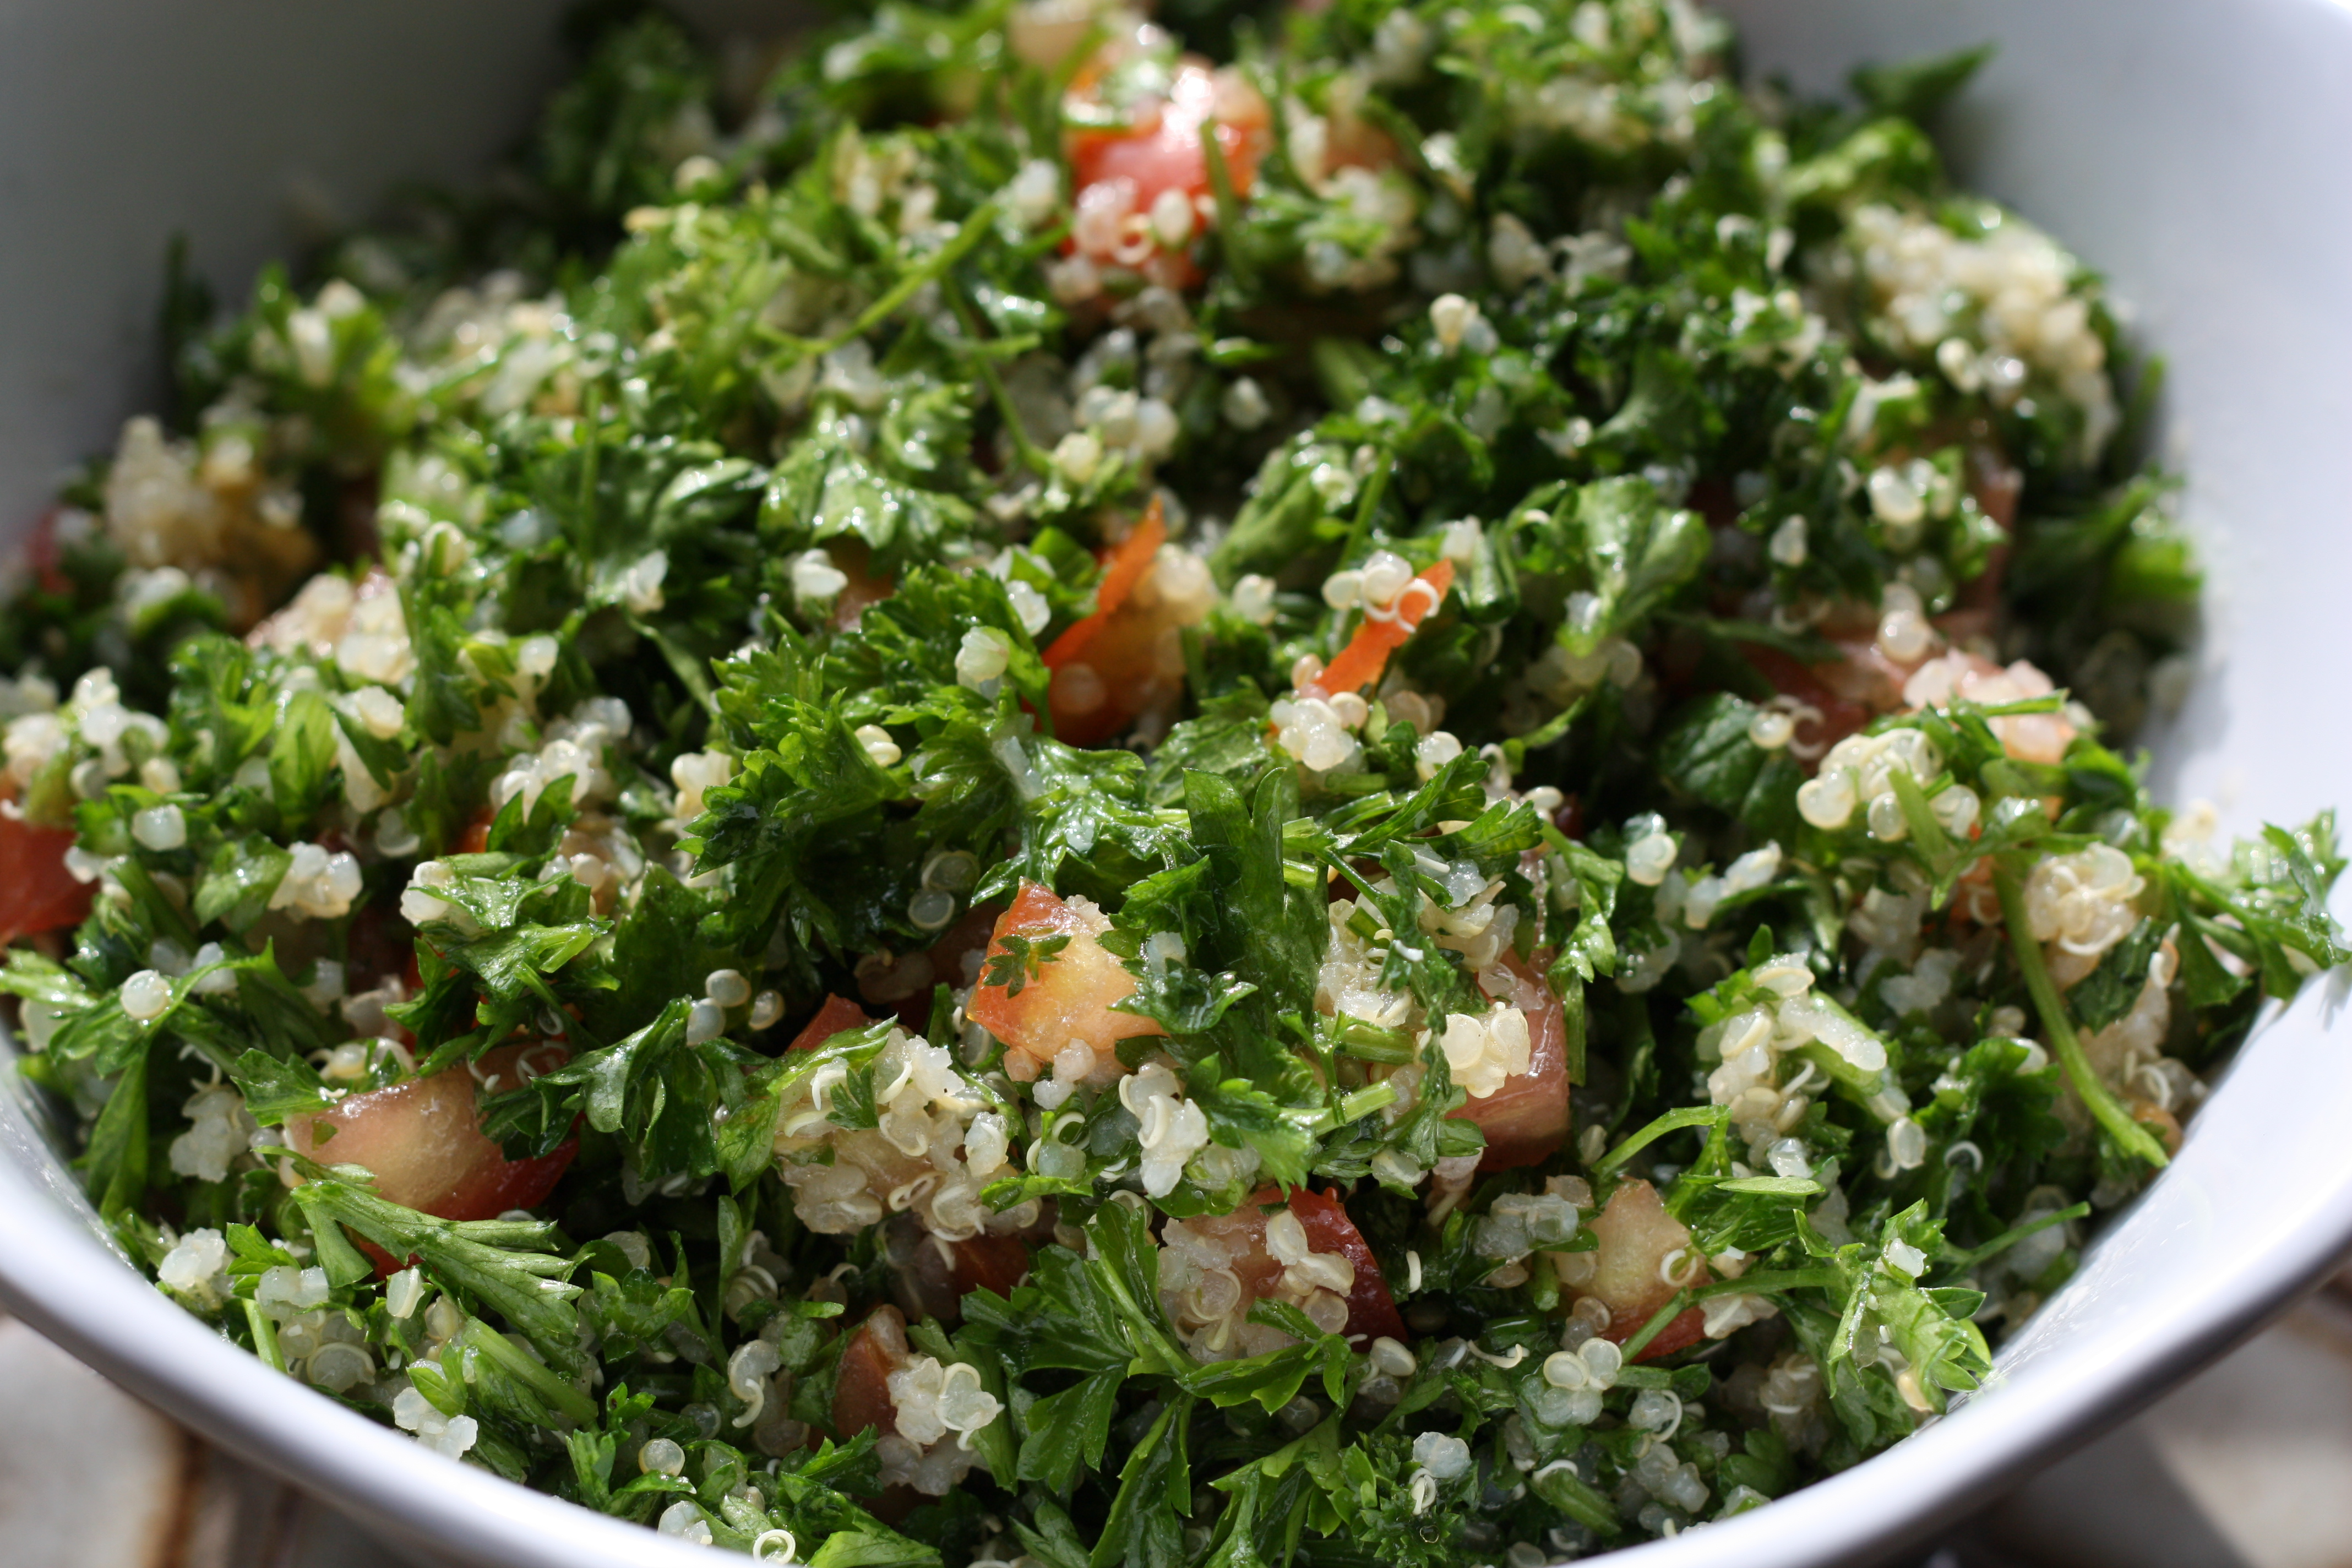 Nyc Quinoa Tabouli And Cupcakes For A Digestive Peace Of Mind Kate Scarlata Rdn,Pork Loin Country Style Ribs Boneless